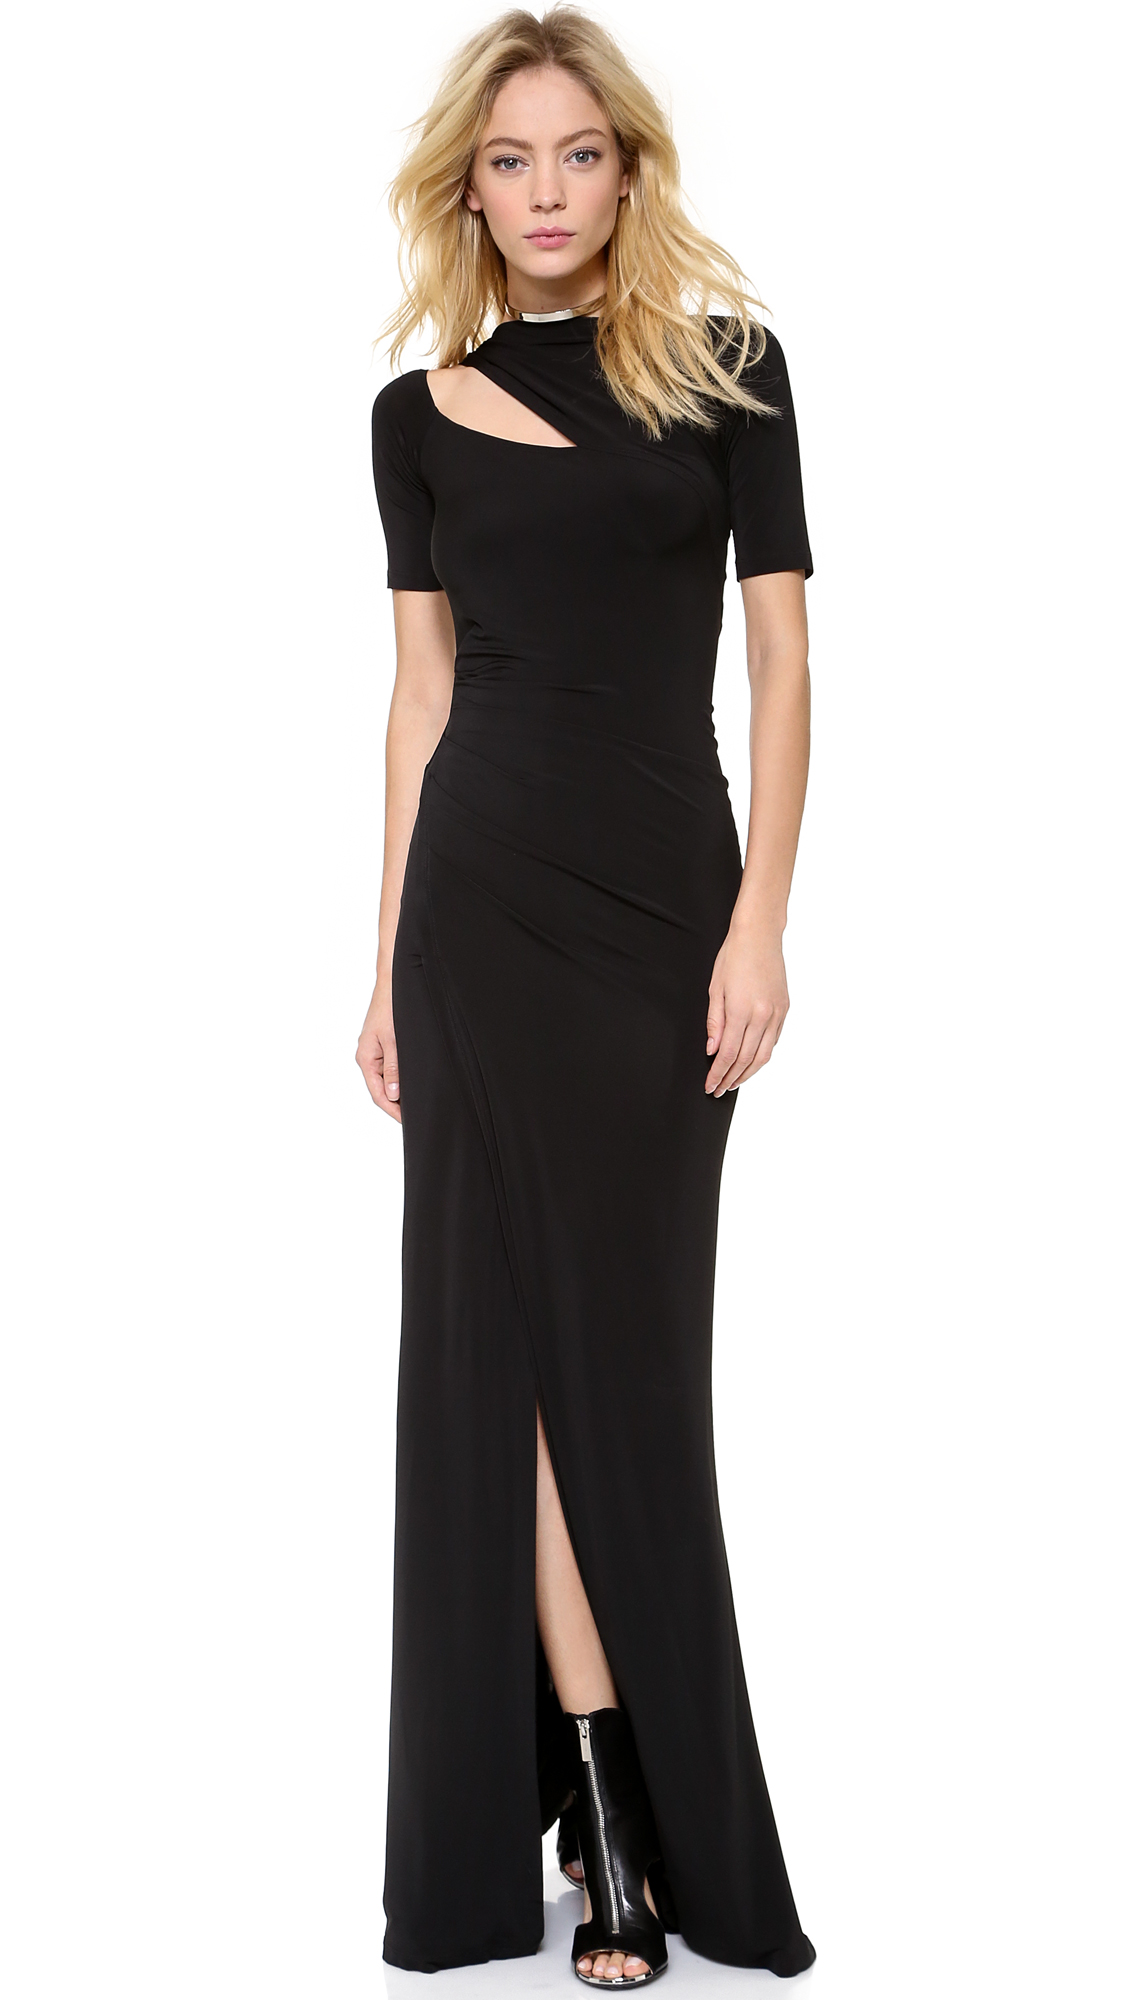 Donna karan new york one shoulder evening gown in black lyst for Donna karen new york